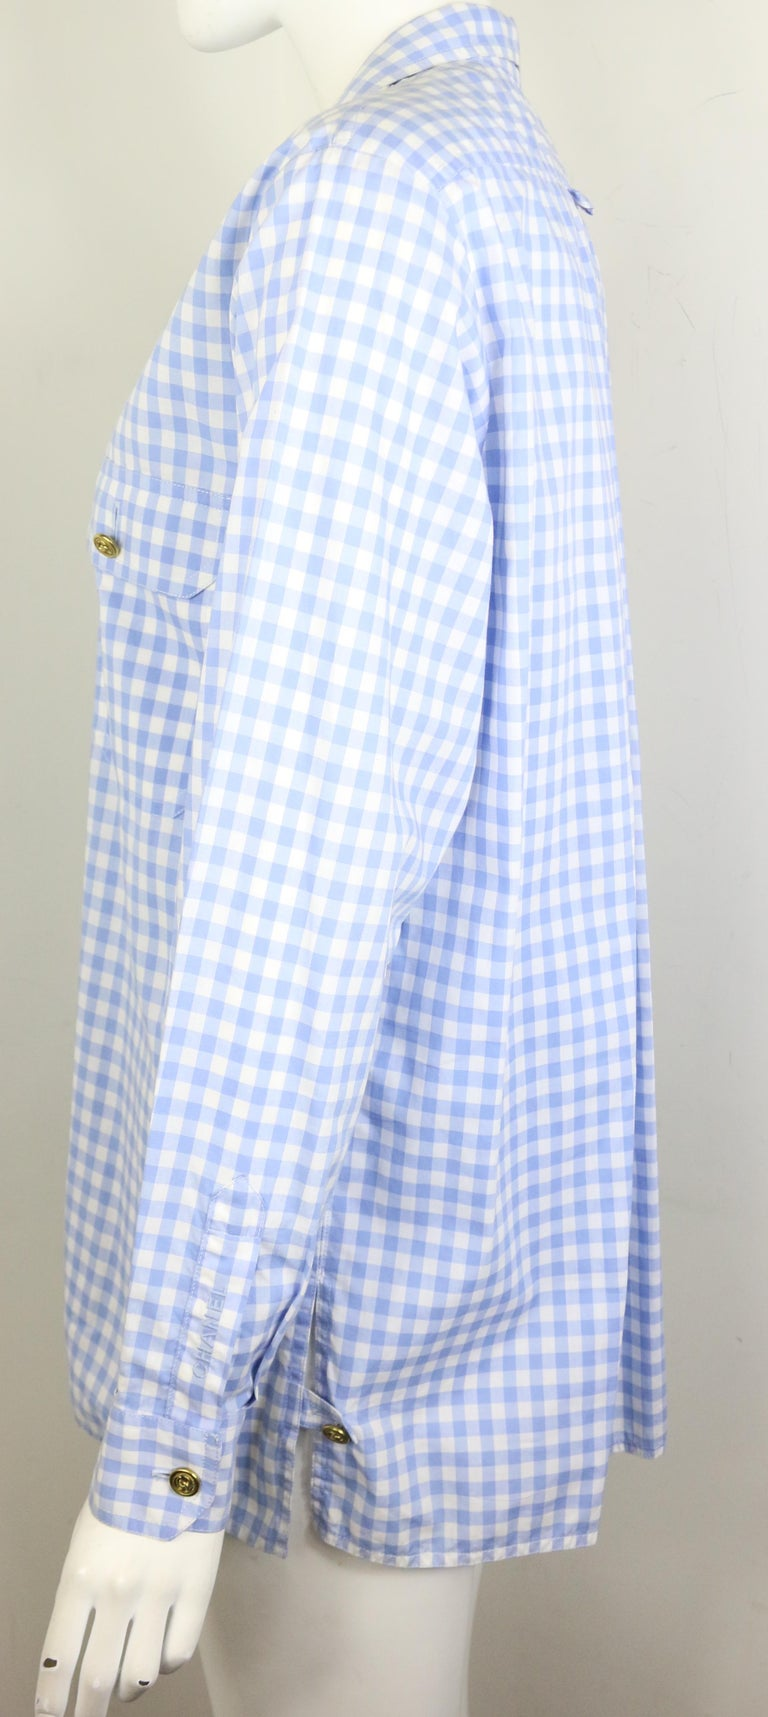 Chanel Cotton Blue and White Check Shirt and Short Pants Ensemble  For Sale 1